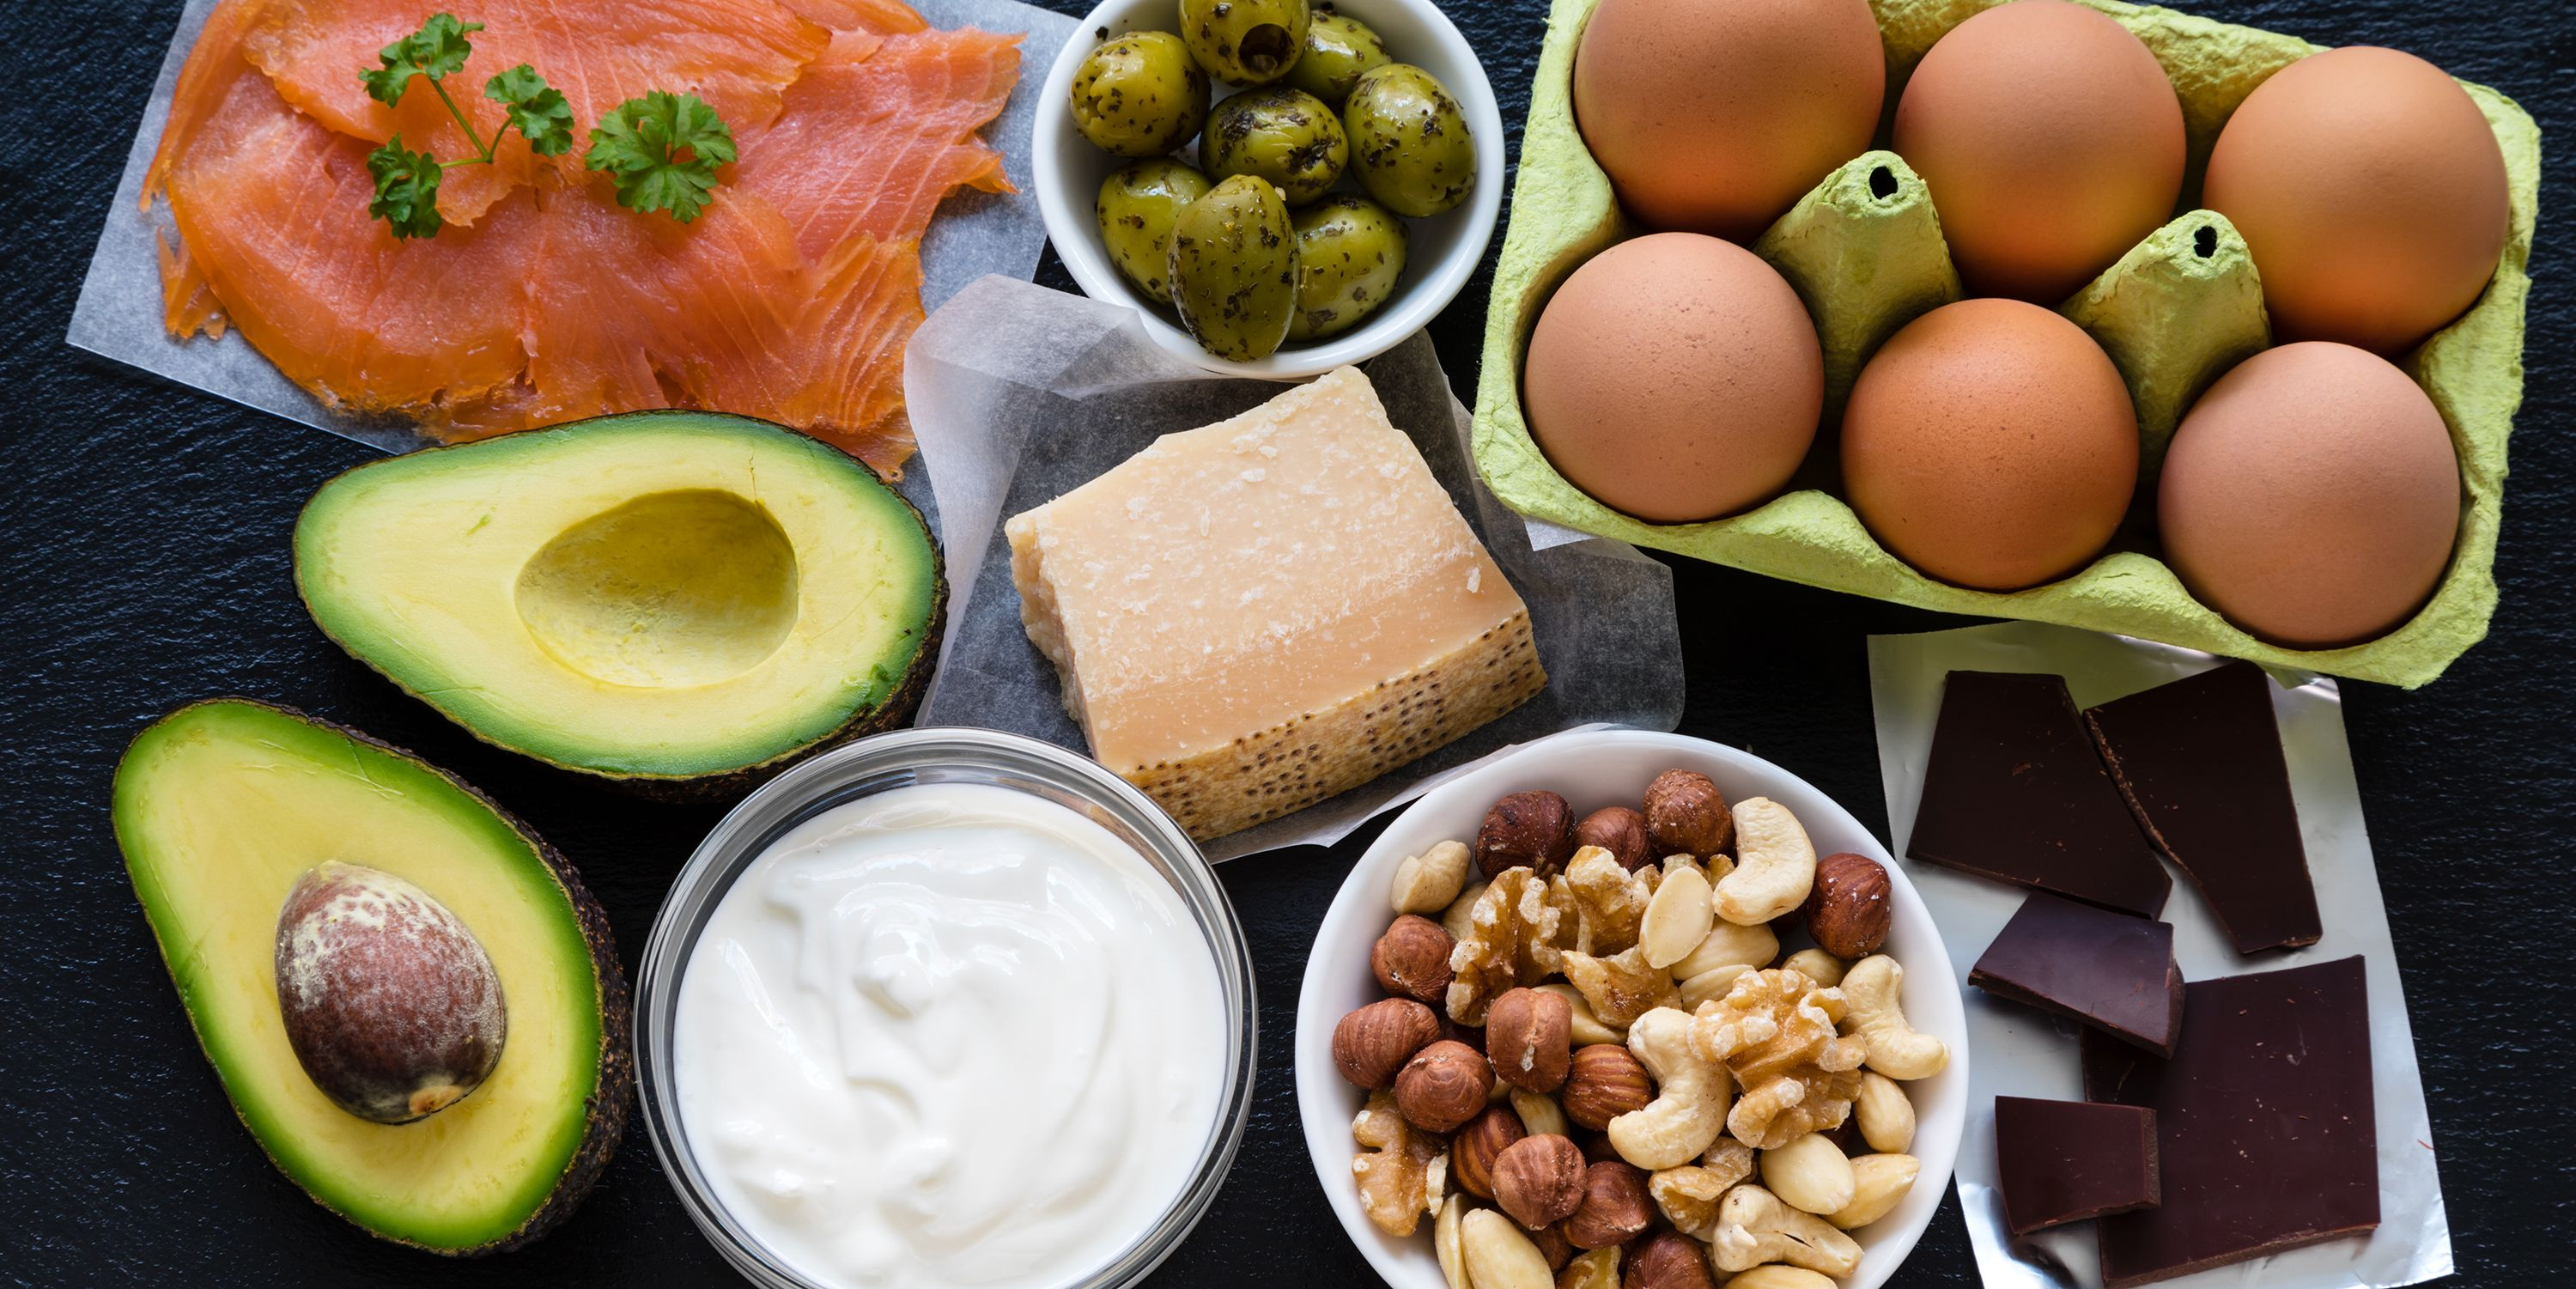 What can i eat for dinner on a ketogenic diet